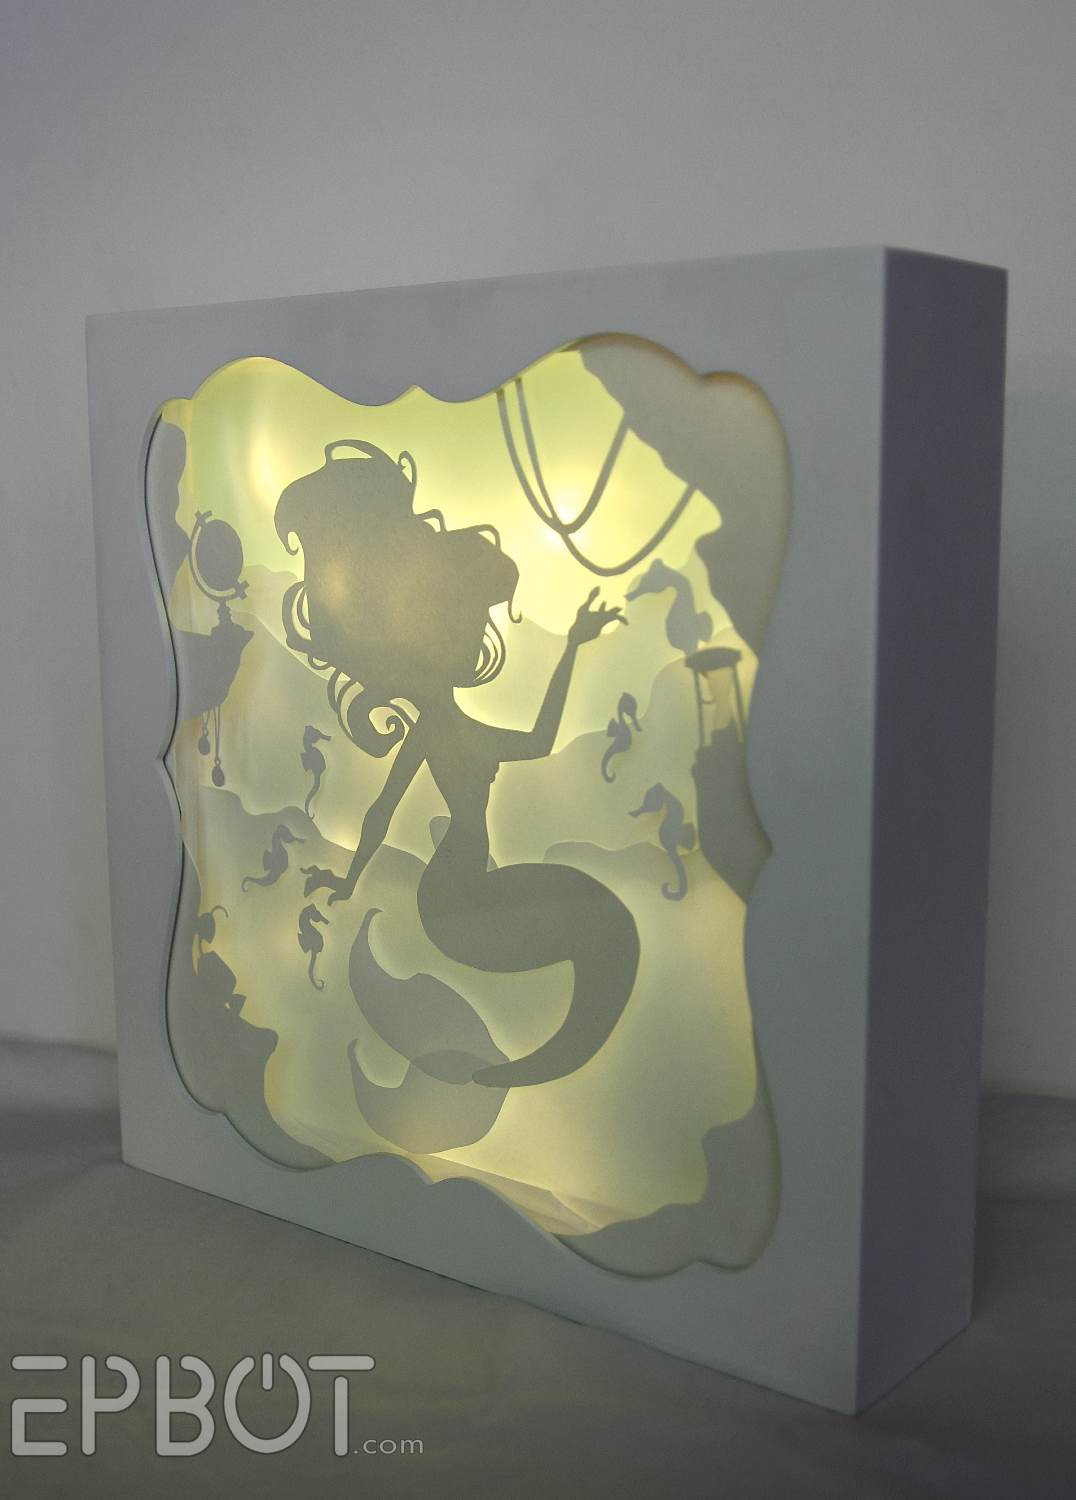 EPBOT This Little Mermaid Papercutting Lights Up AND IT